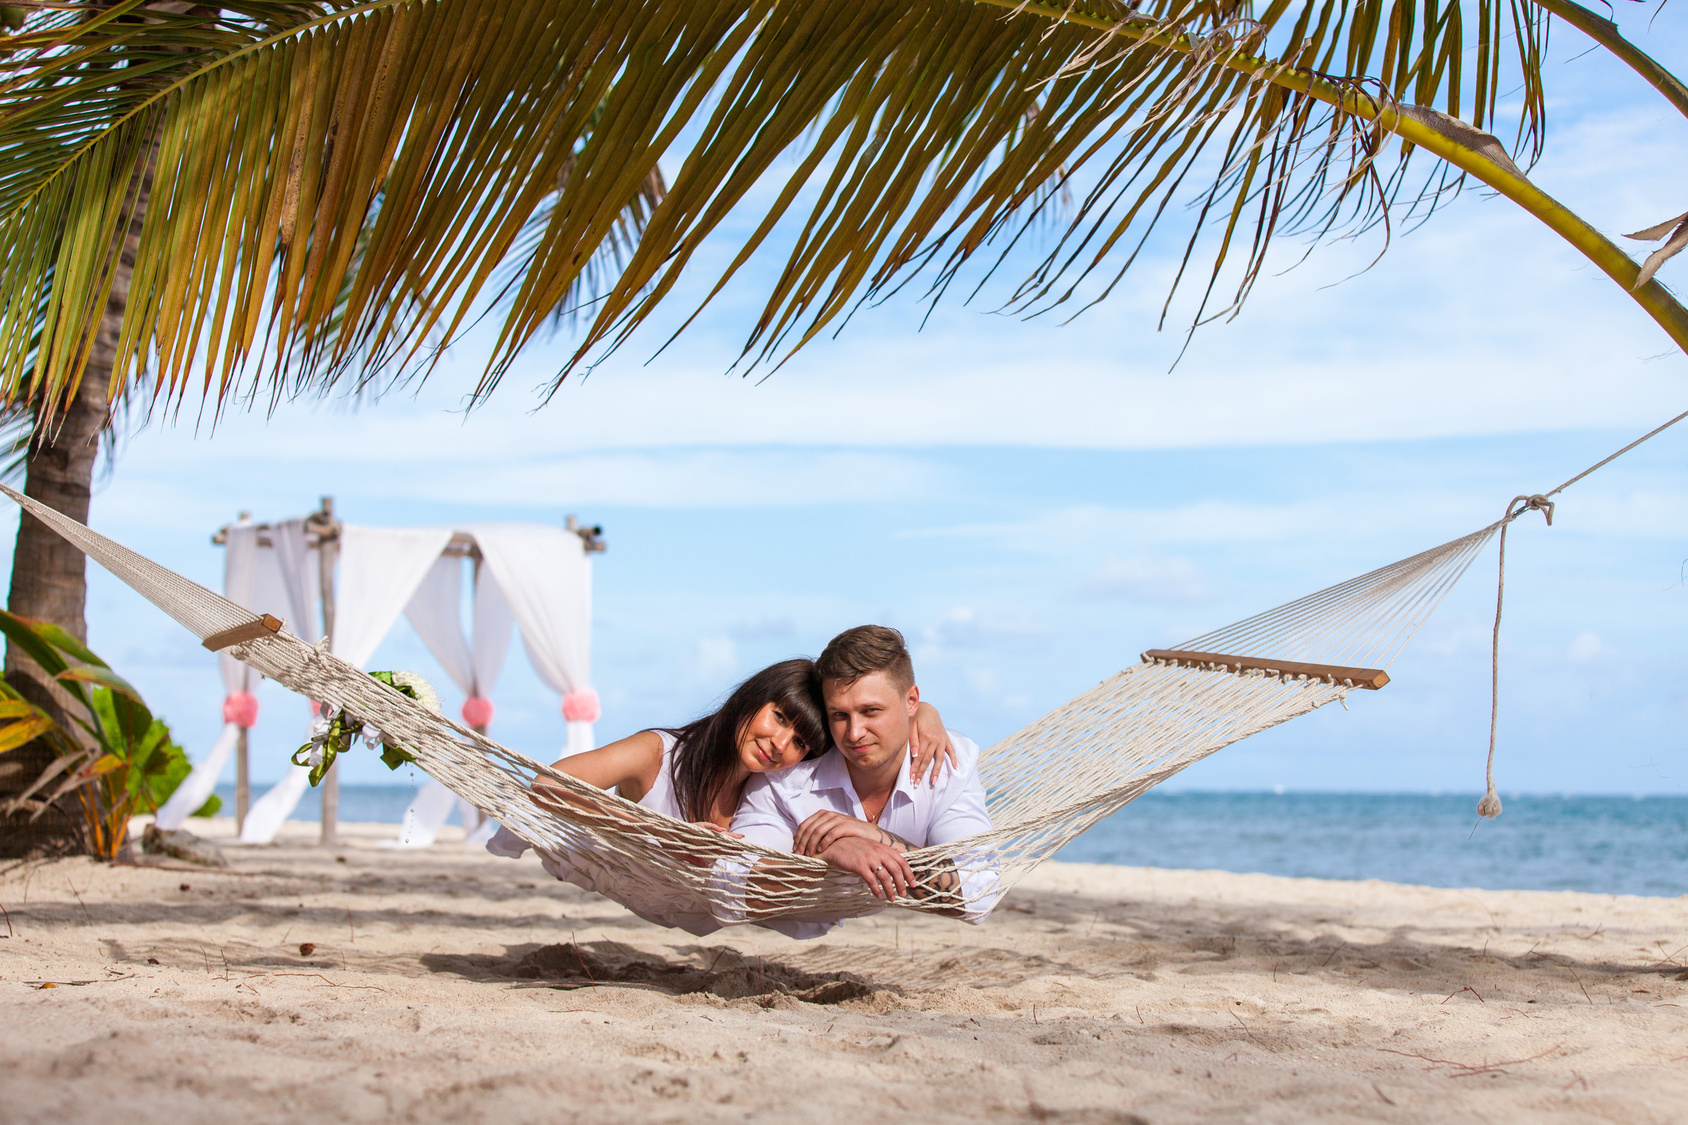 young loving couple on their wedding day, relaxing in beach hammock, outdoor beach wedding in tropics